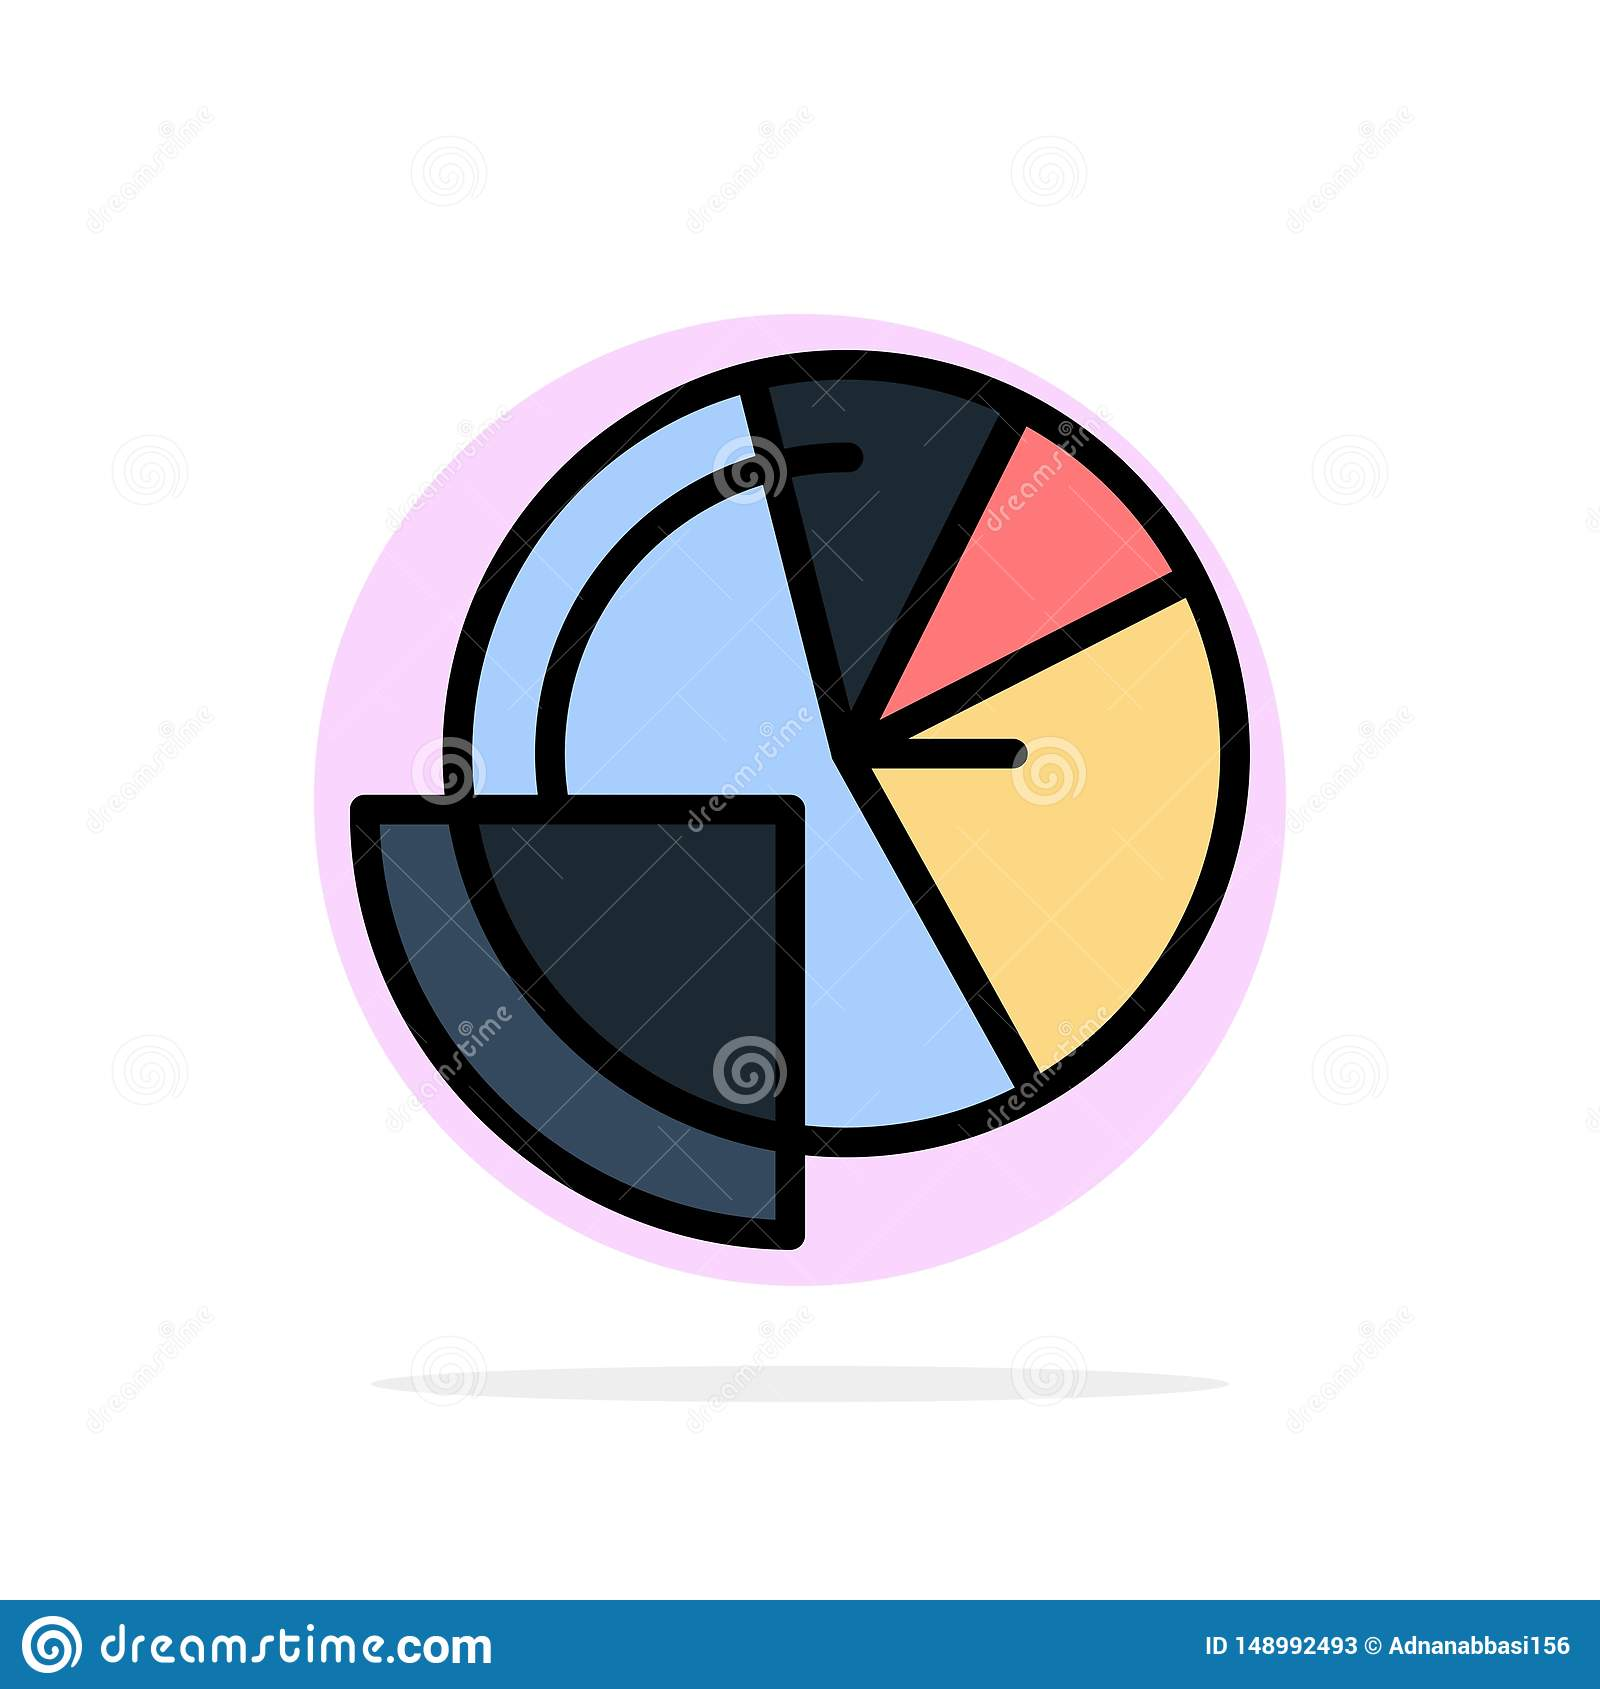 Financial Data, Analysis, Analytics, Data, Finance Abstract Circle Background Flat color Icon